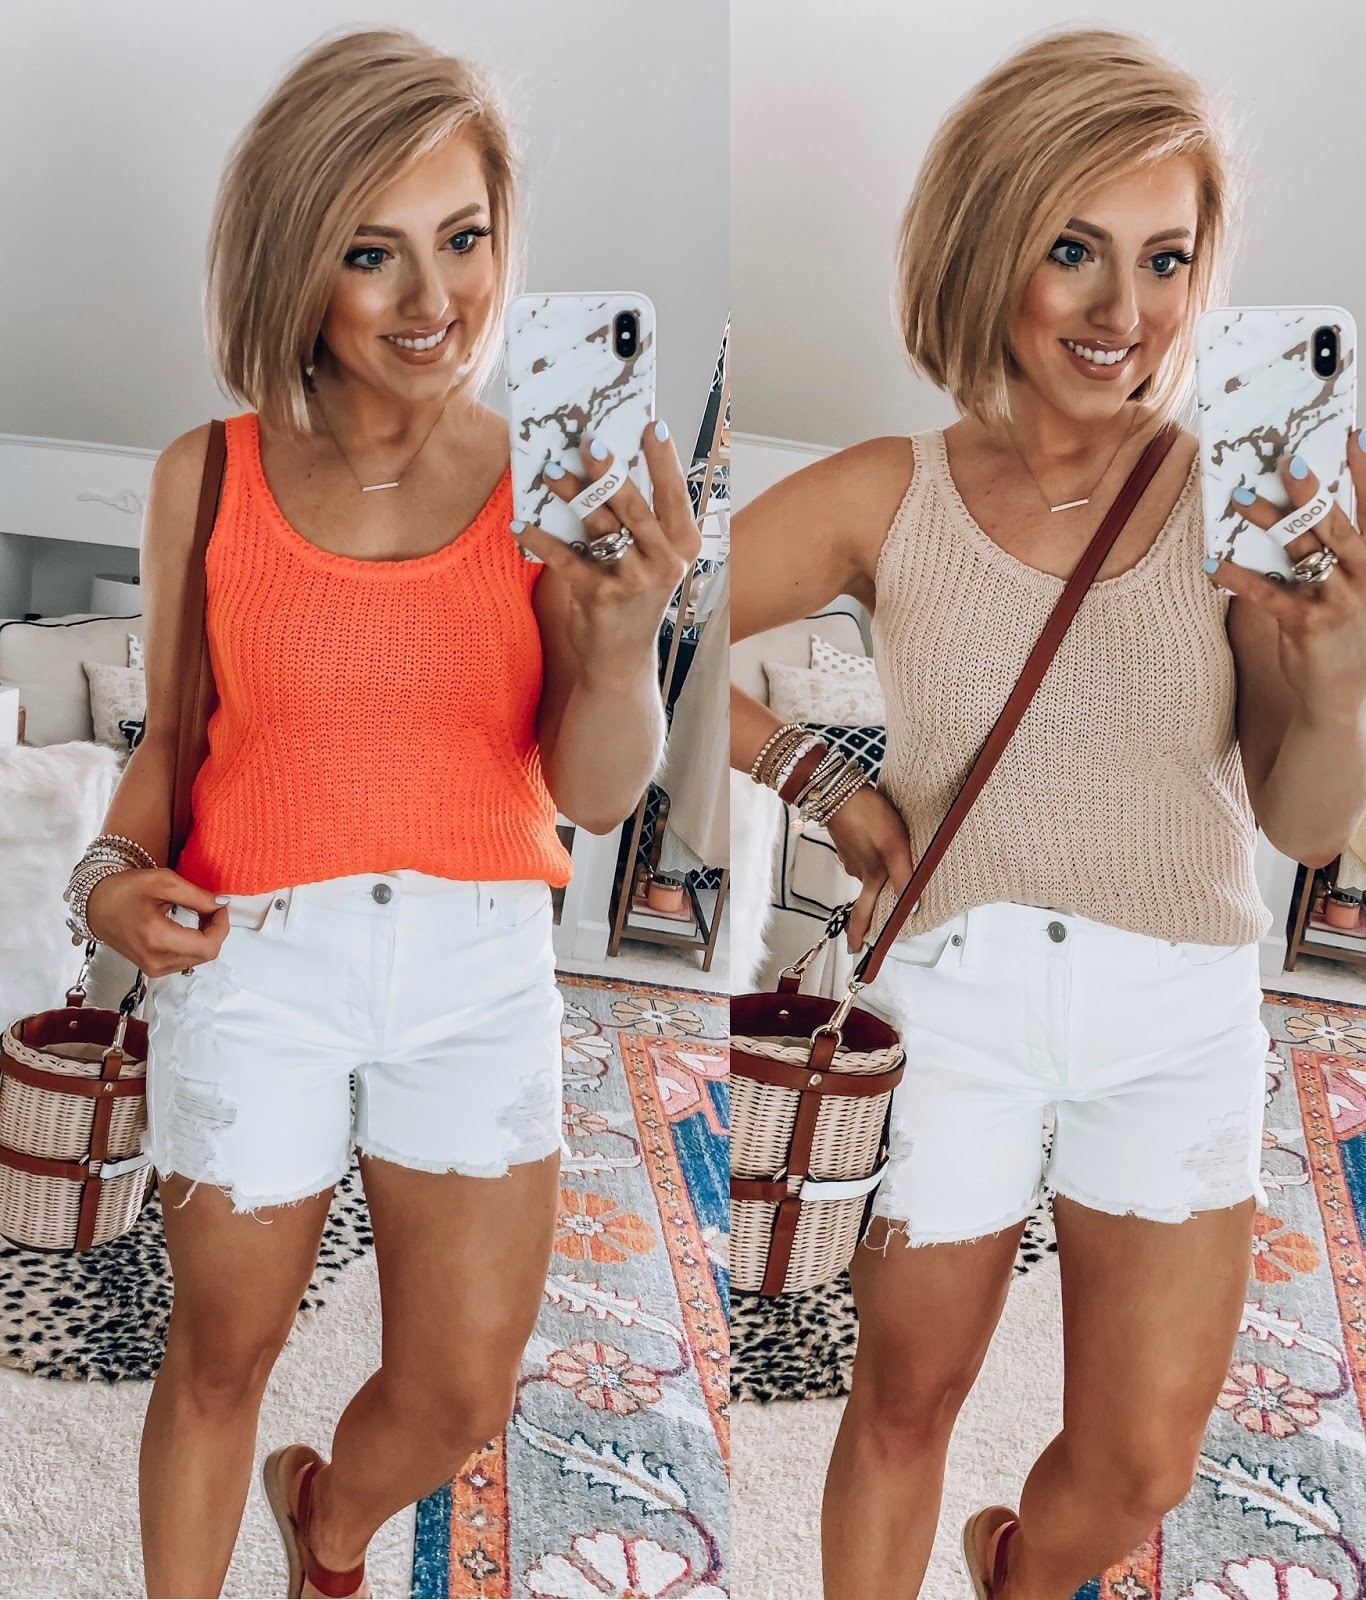 Recent Summer Finds With Walmart - Something Delightful Blog #walmartfashion #affordablefashion #denimshorts #walmartfinds #casualstyle #summerstyle